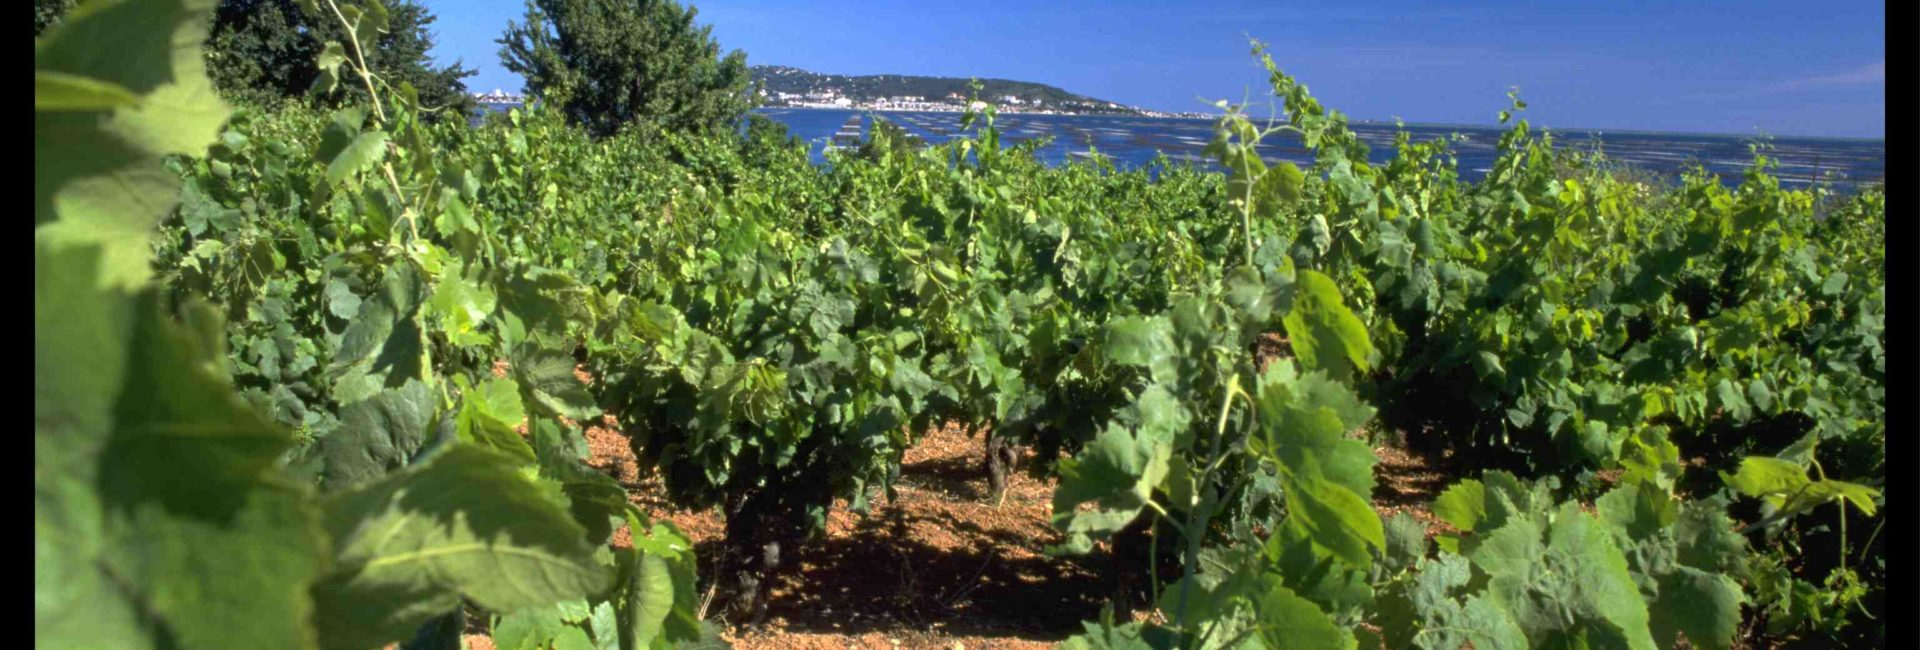 le vignoble de l'appellation picpoul-de-pinet